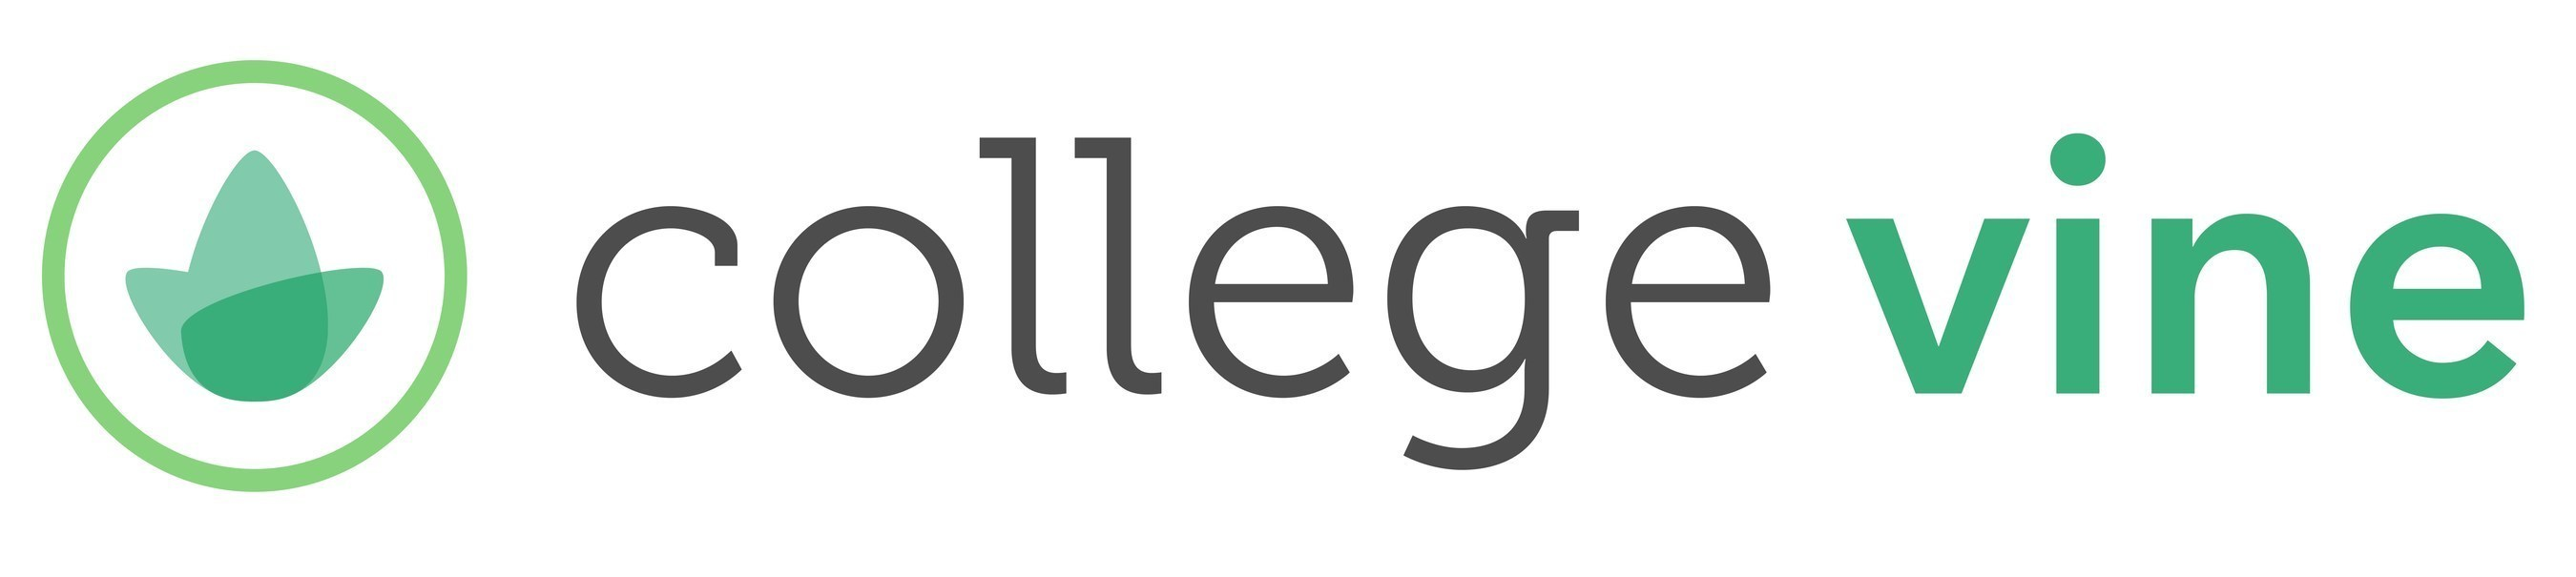 CollegeVine-Logo-Large Logo